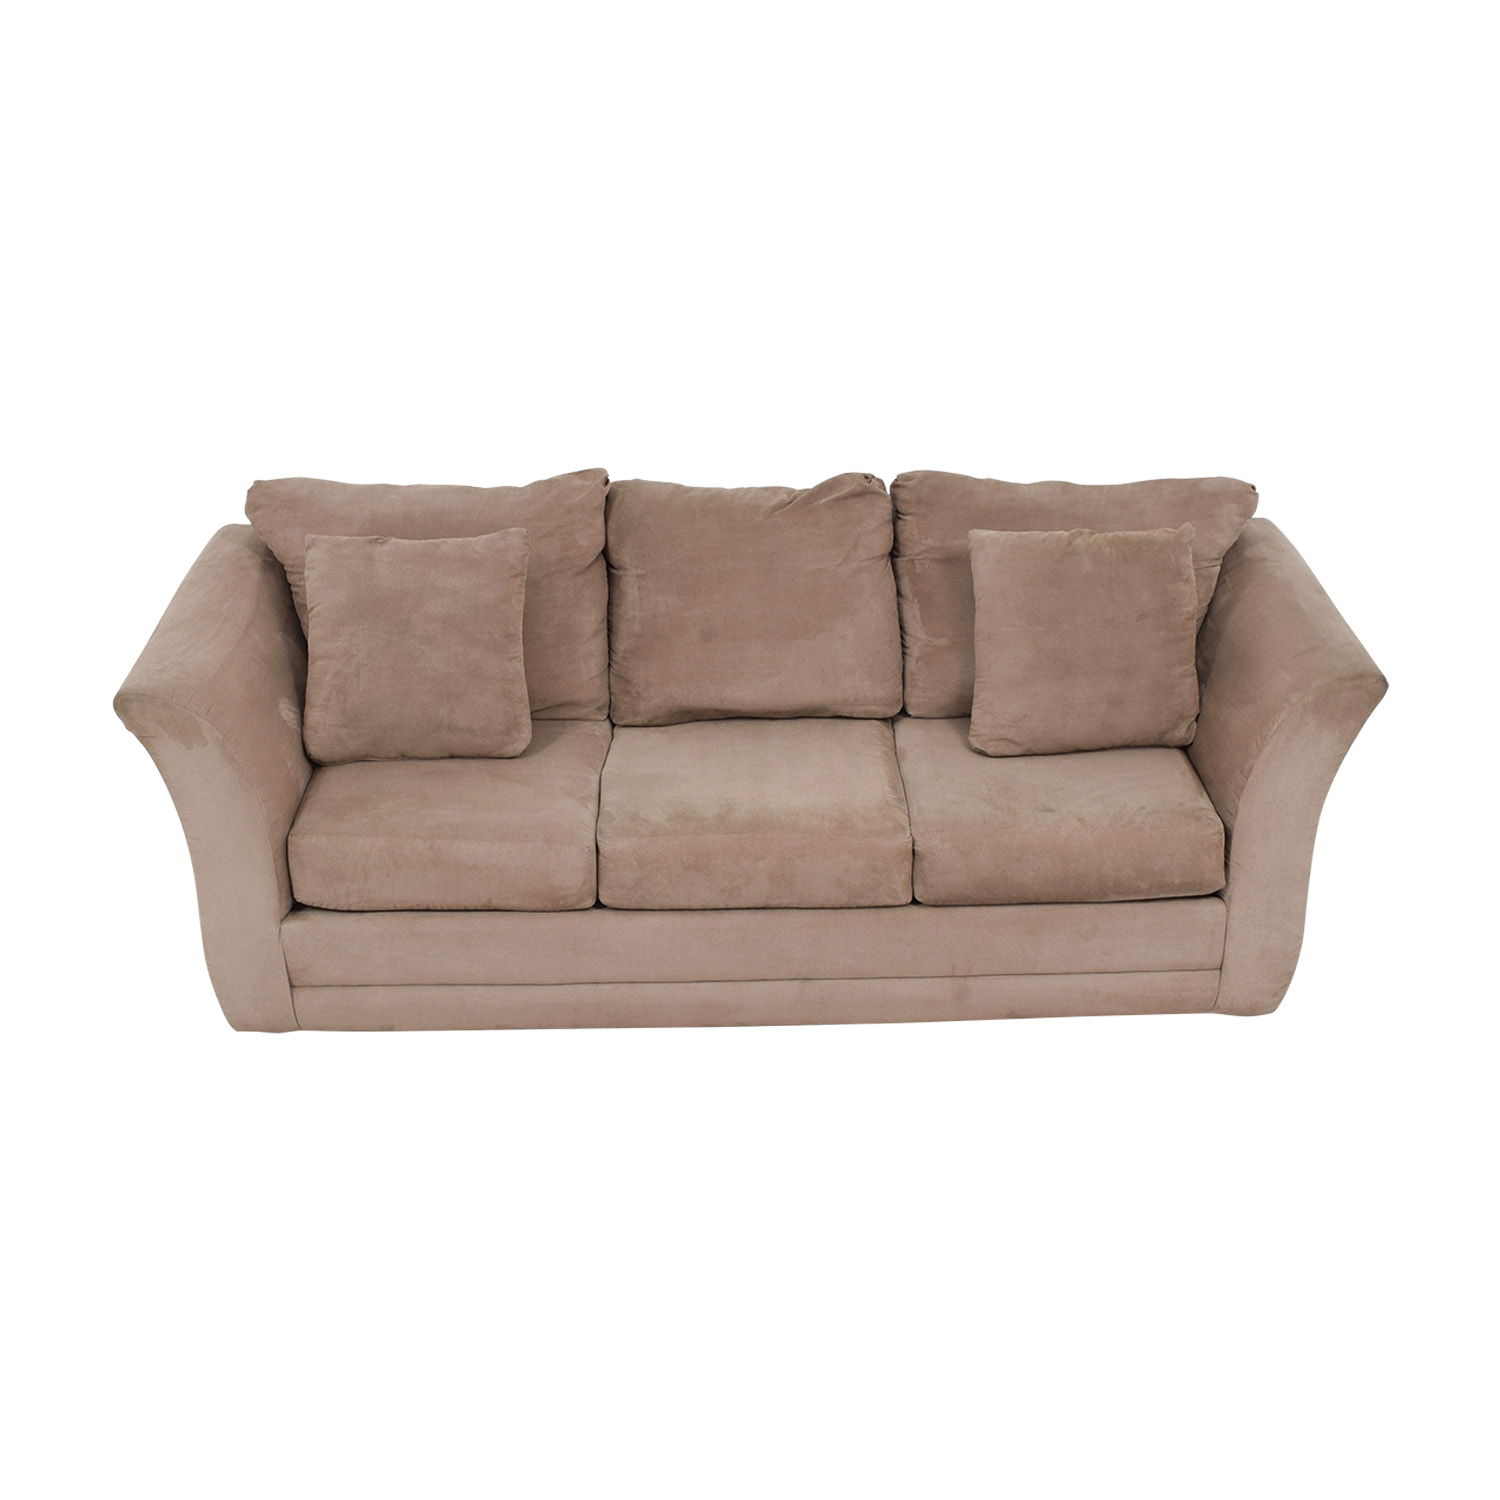 buy Jennifer Furniture Beige Three-Cushion Sofa Jennifer Furniture